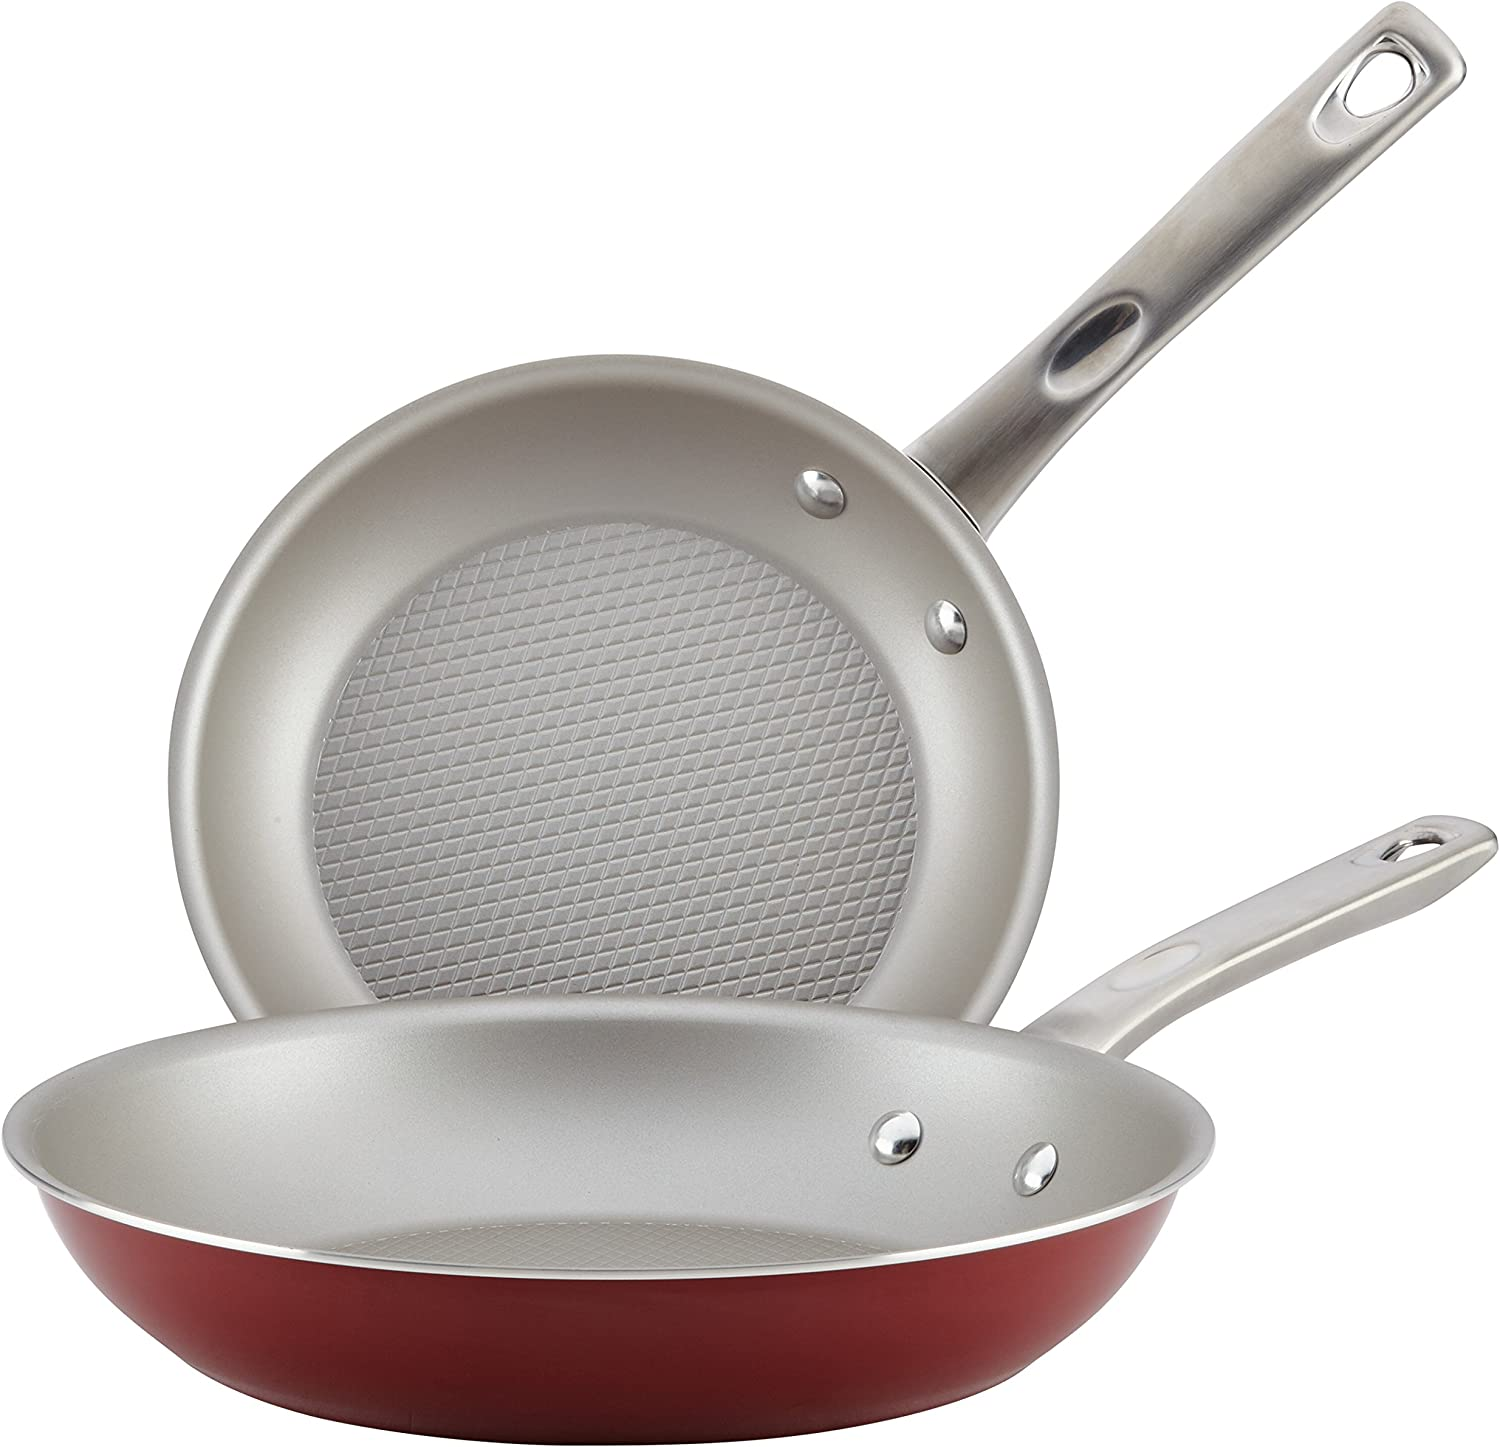 Ayesha Curry Home Collection Nonstick Frying Pan Set / Fry Pan Set / Skillet Set - 9.25 Inch and 11.5 Inch, Red